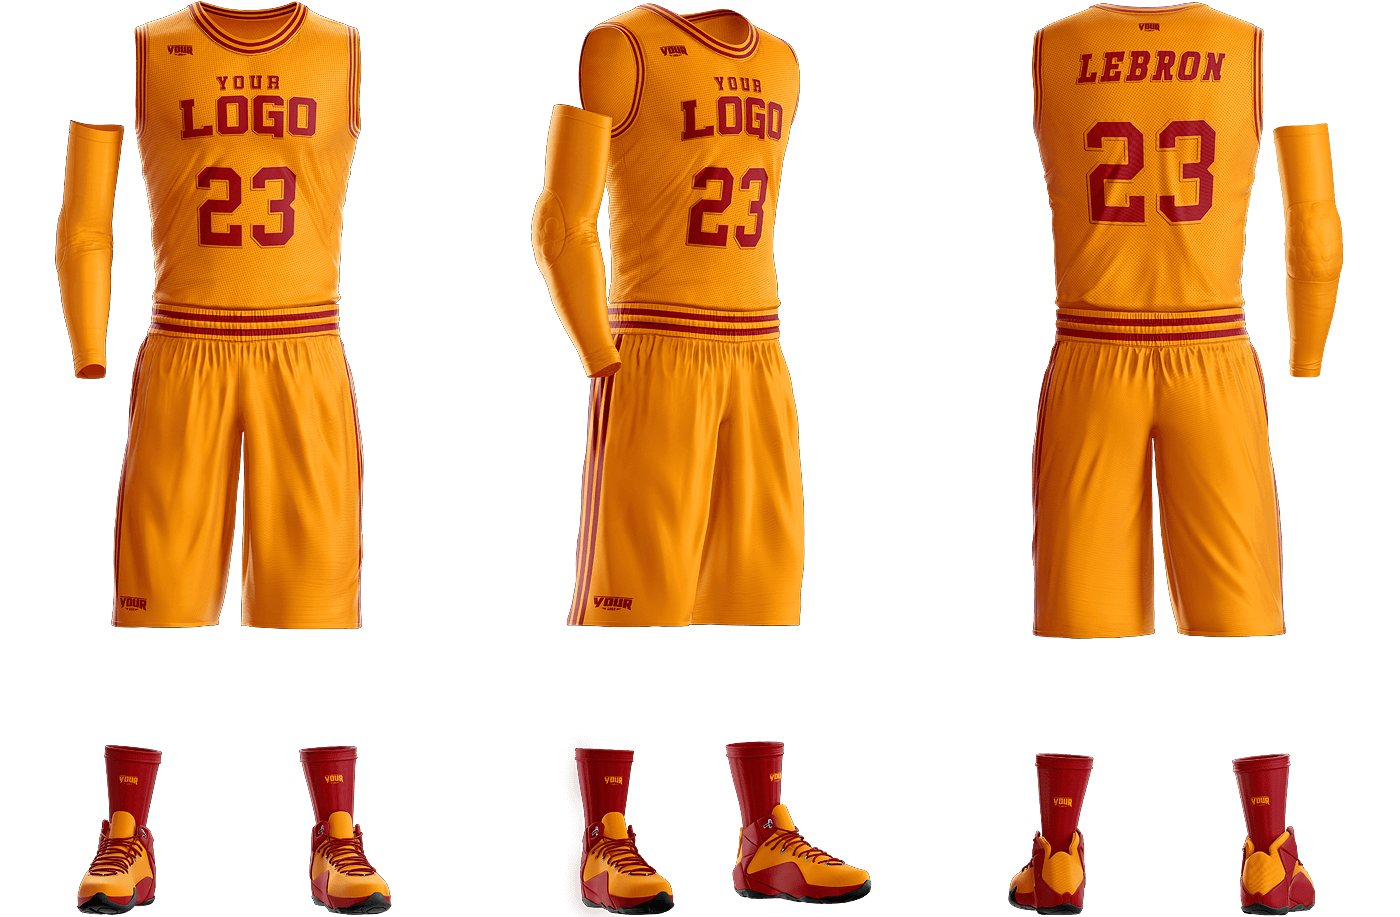 Download Basketball Uniform Photoshop Template Mockup Basketball Uniforms Design Basketball Uniforms Xavier Basketball